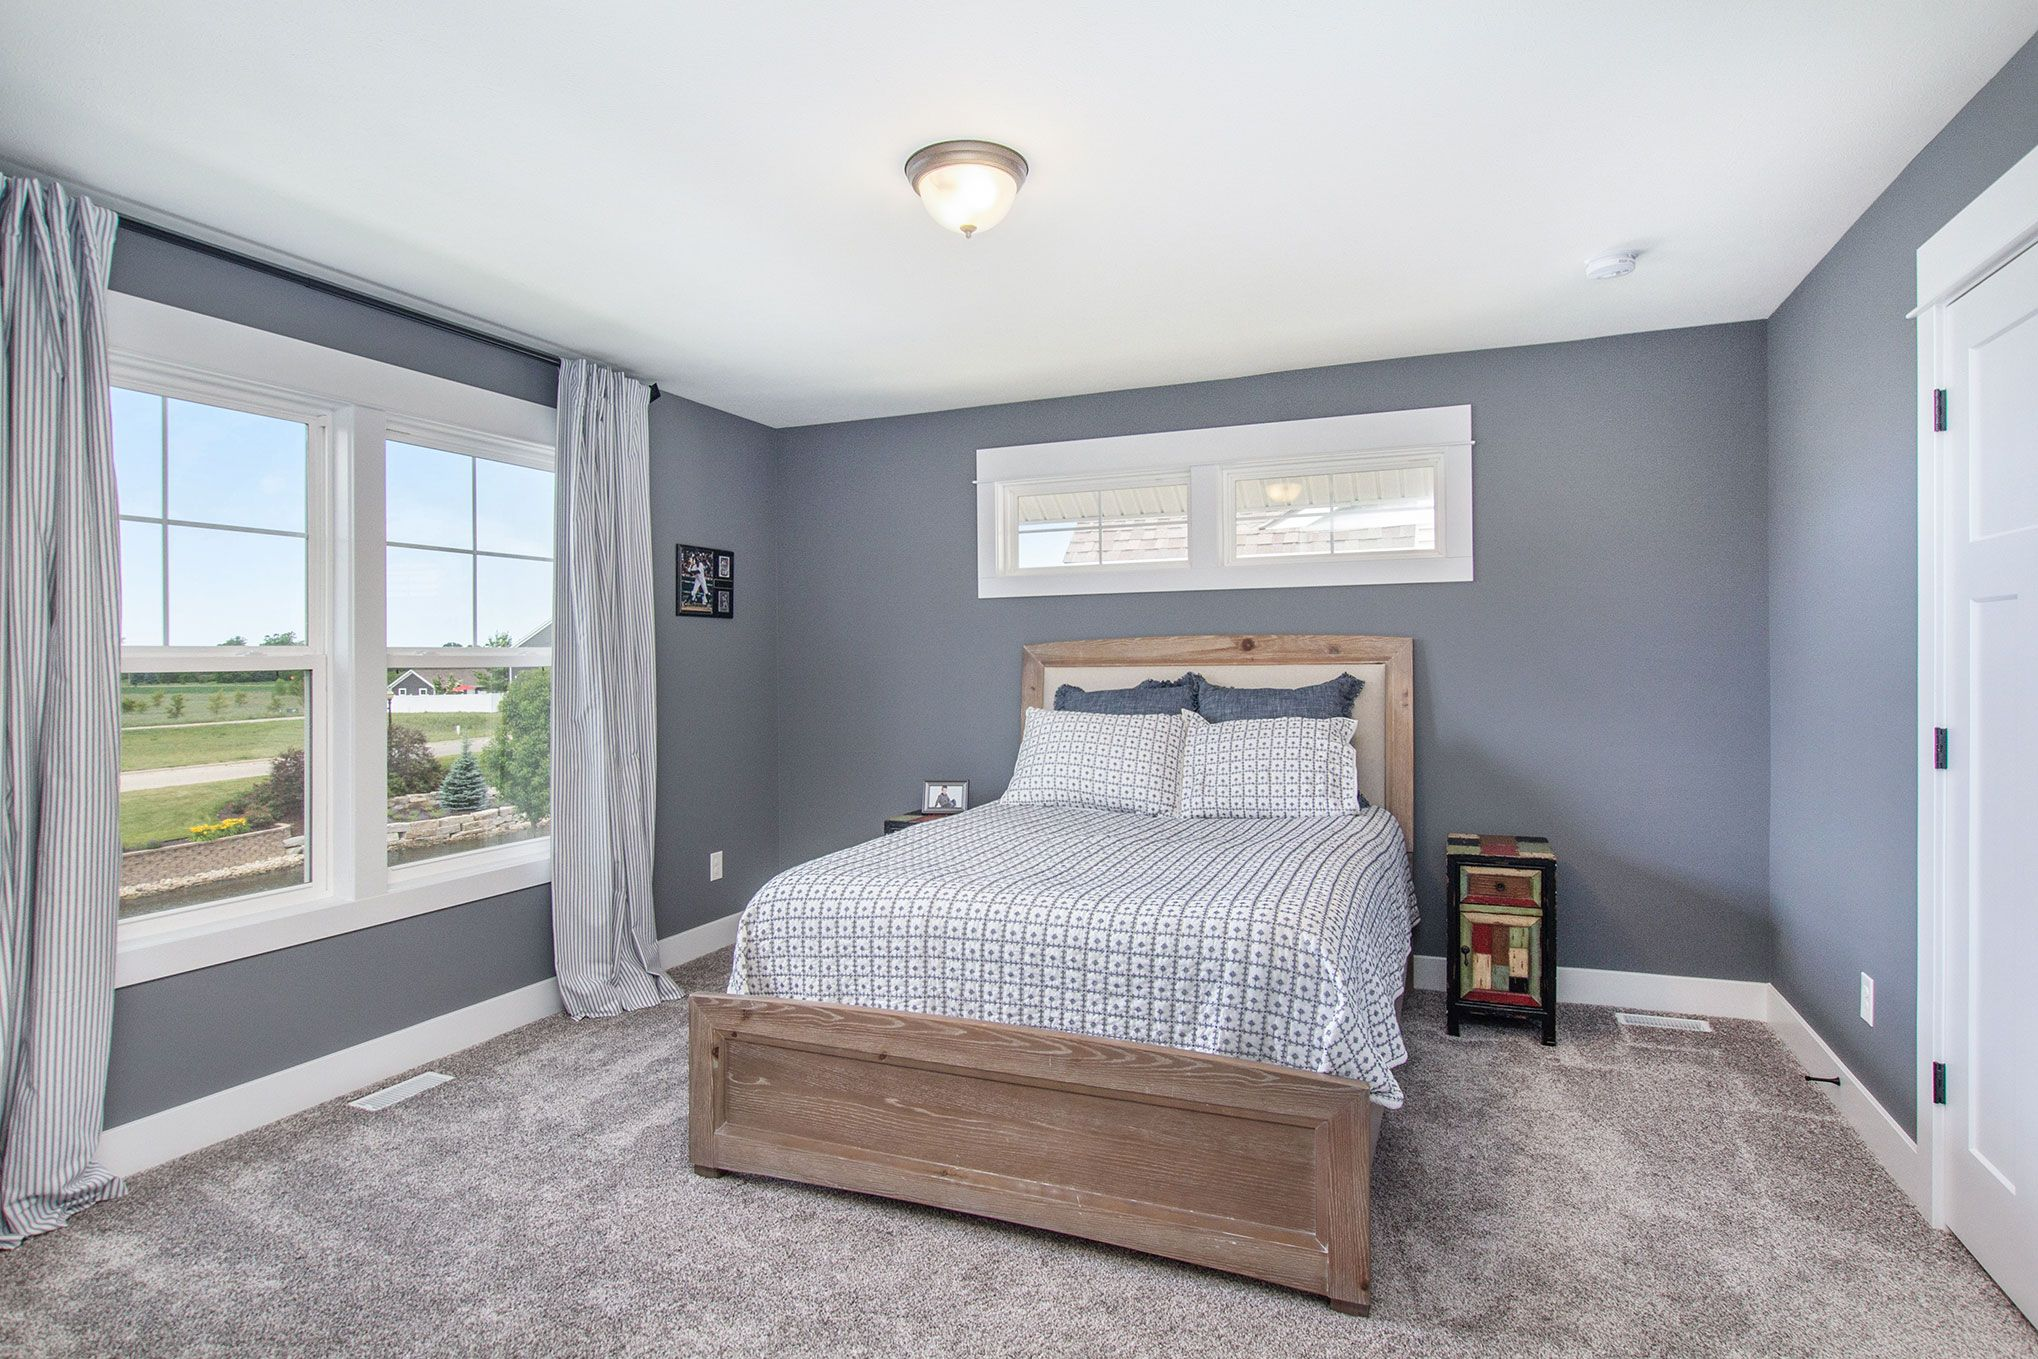 Bedroom featured in The Macatawa Legends Townhomes By Eastbrook Homes Inc. in Grand Rapids, MI